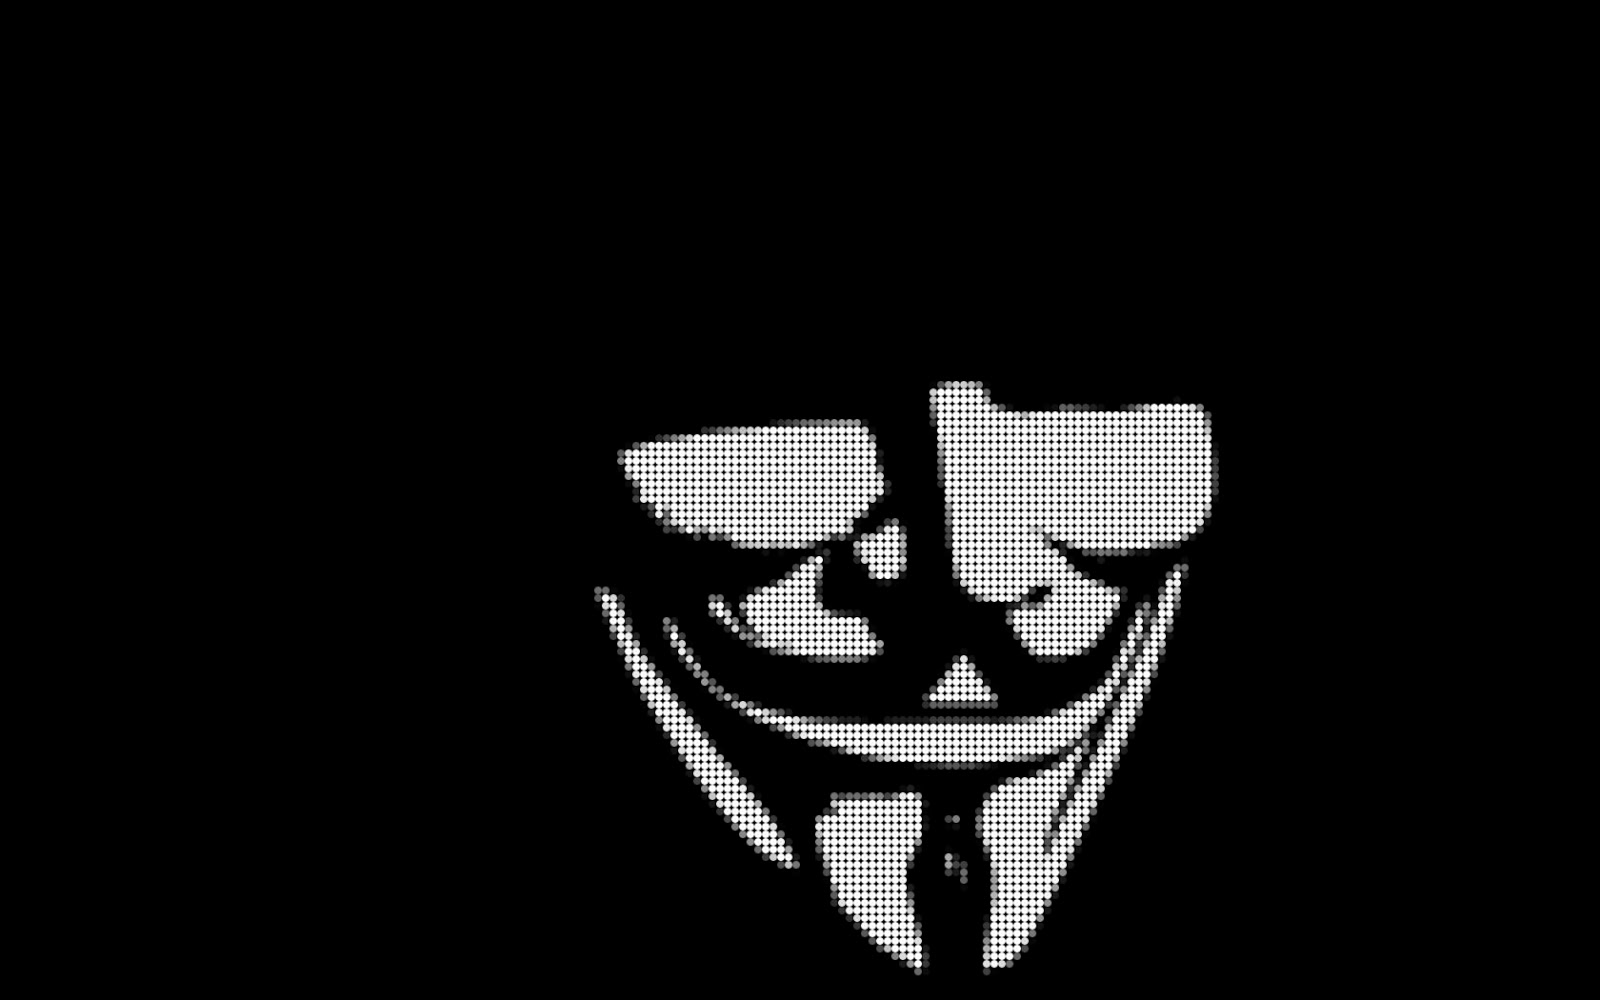 http://1.bp.blogspot.com/-haXiRAPVACg/UXdSyMp_hsI/AAAAAAAA740/kE7VJ7j2e5E/s1600/anonymous-guy-fawkes-v-for-vendetta-hd-wallpapers.jpg